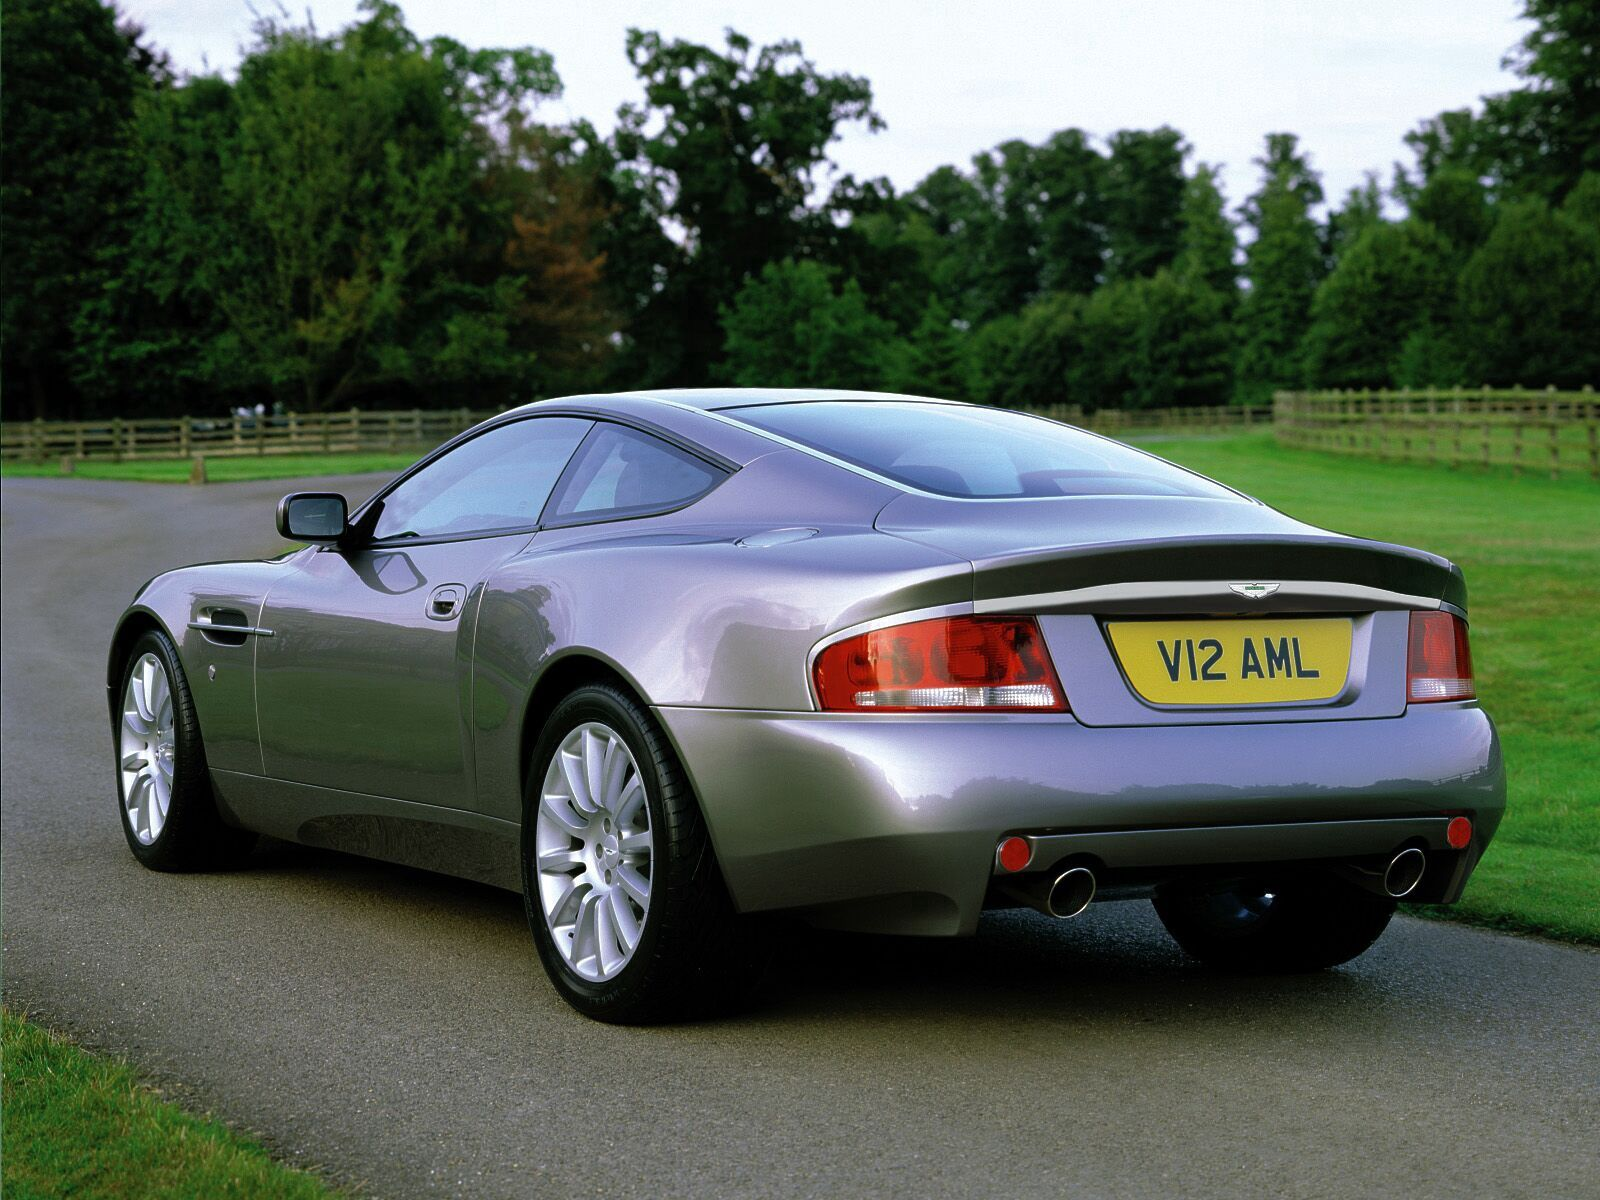 152727 Screensavers and Wallpapers Aston Martin for phone. Download Auto, Nature, Aston Martin, Cars, Grey, Back View, Rear View, V12, Vanquish, 2001 pictures for free